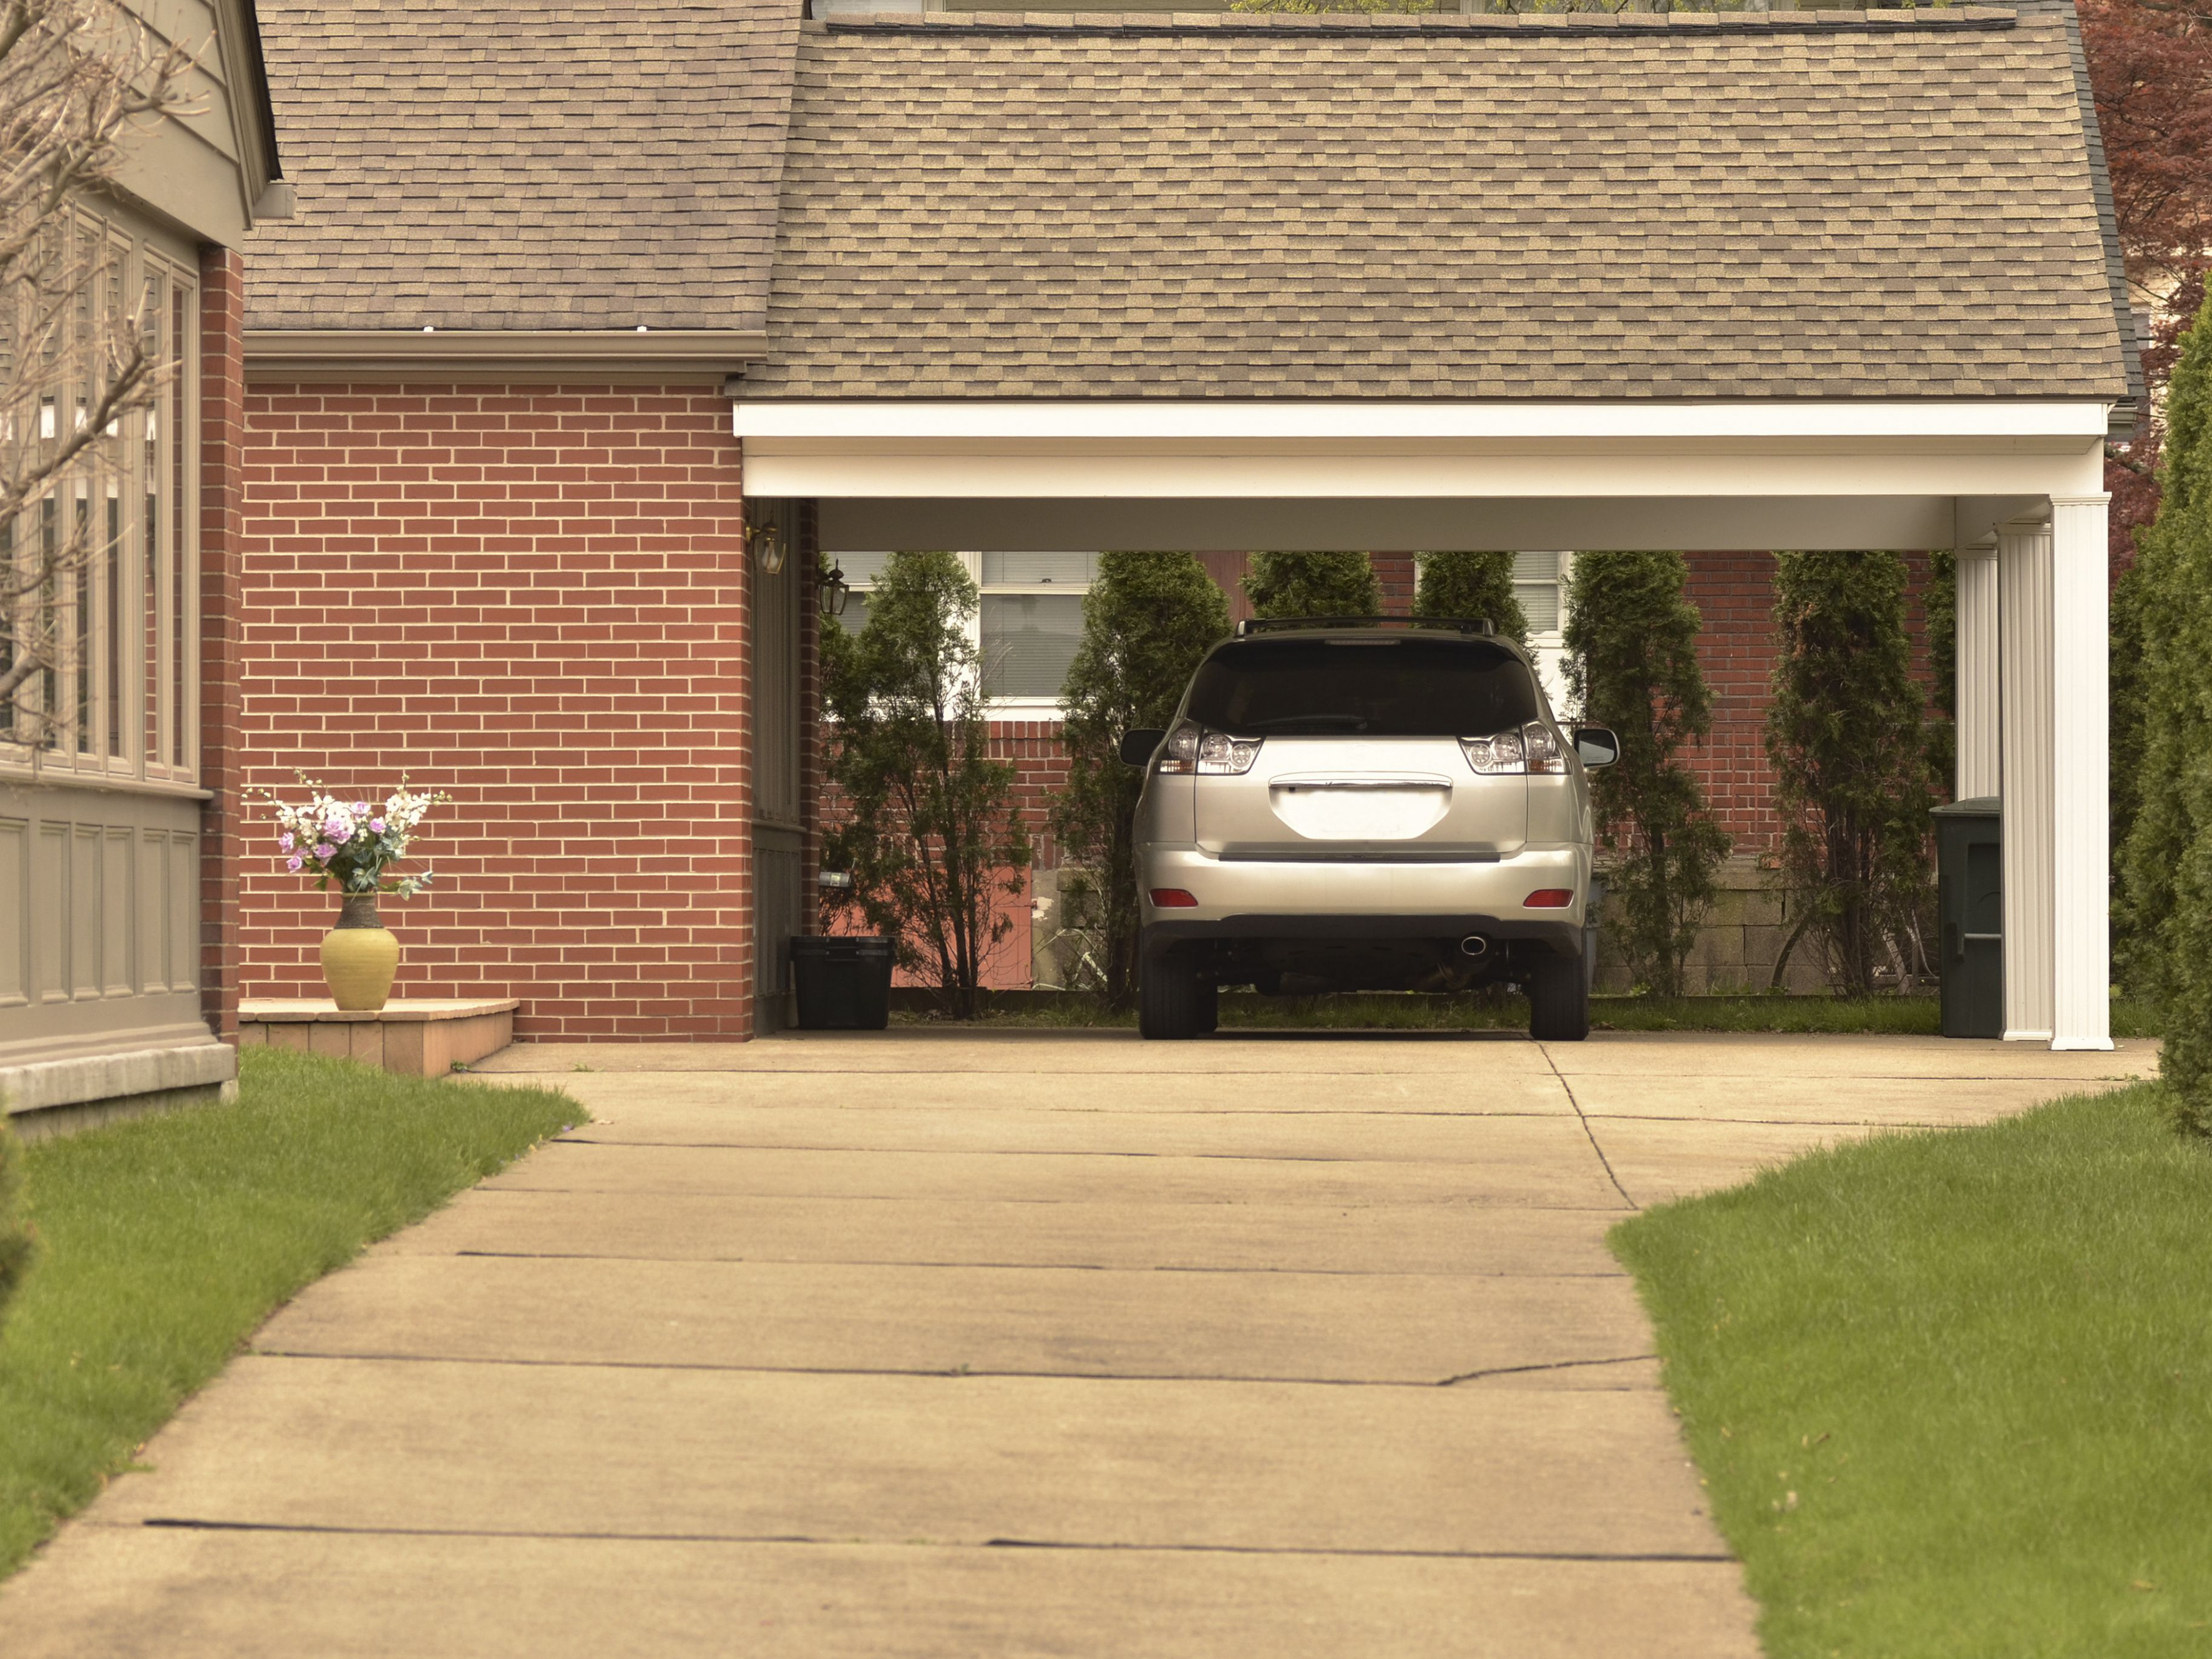 9 Things to Consider Before Converting a Carport